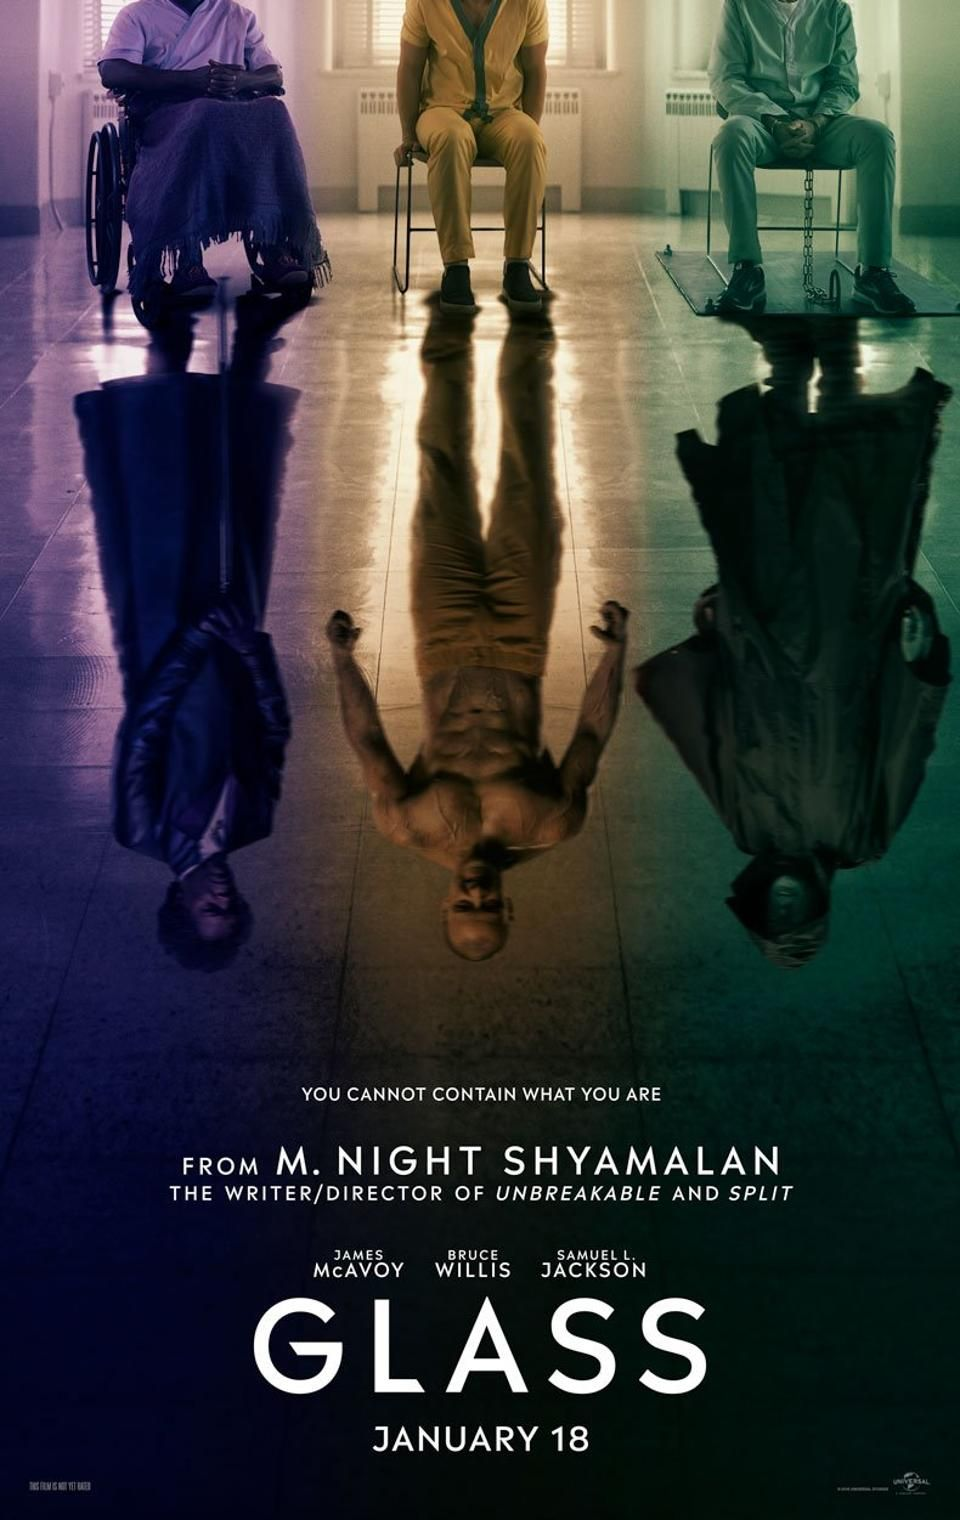 M Night Shyamalan S Glass Poster Teases Unbreakable 2 And Split 2 New Movies Full Movies Online Free Movie Posters